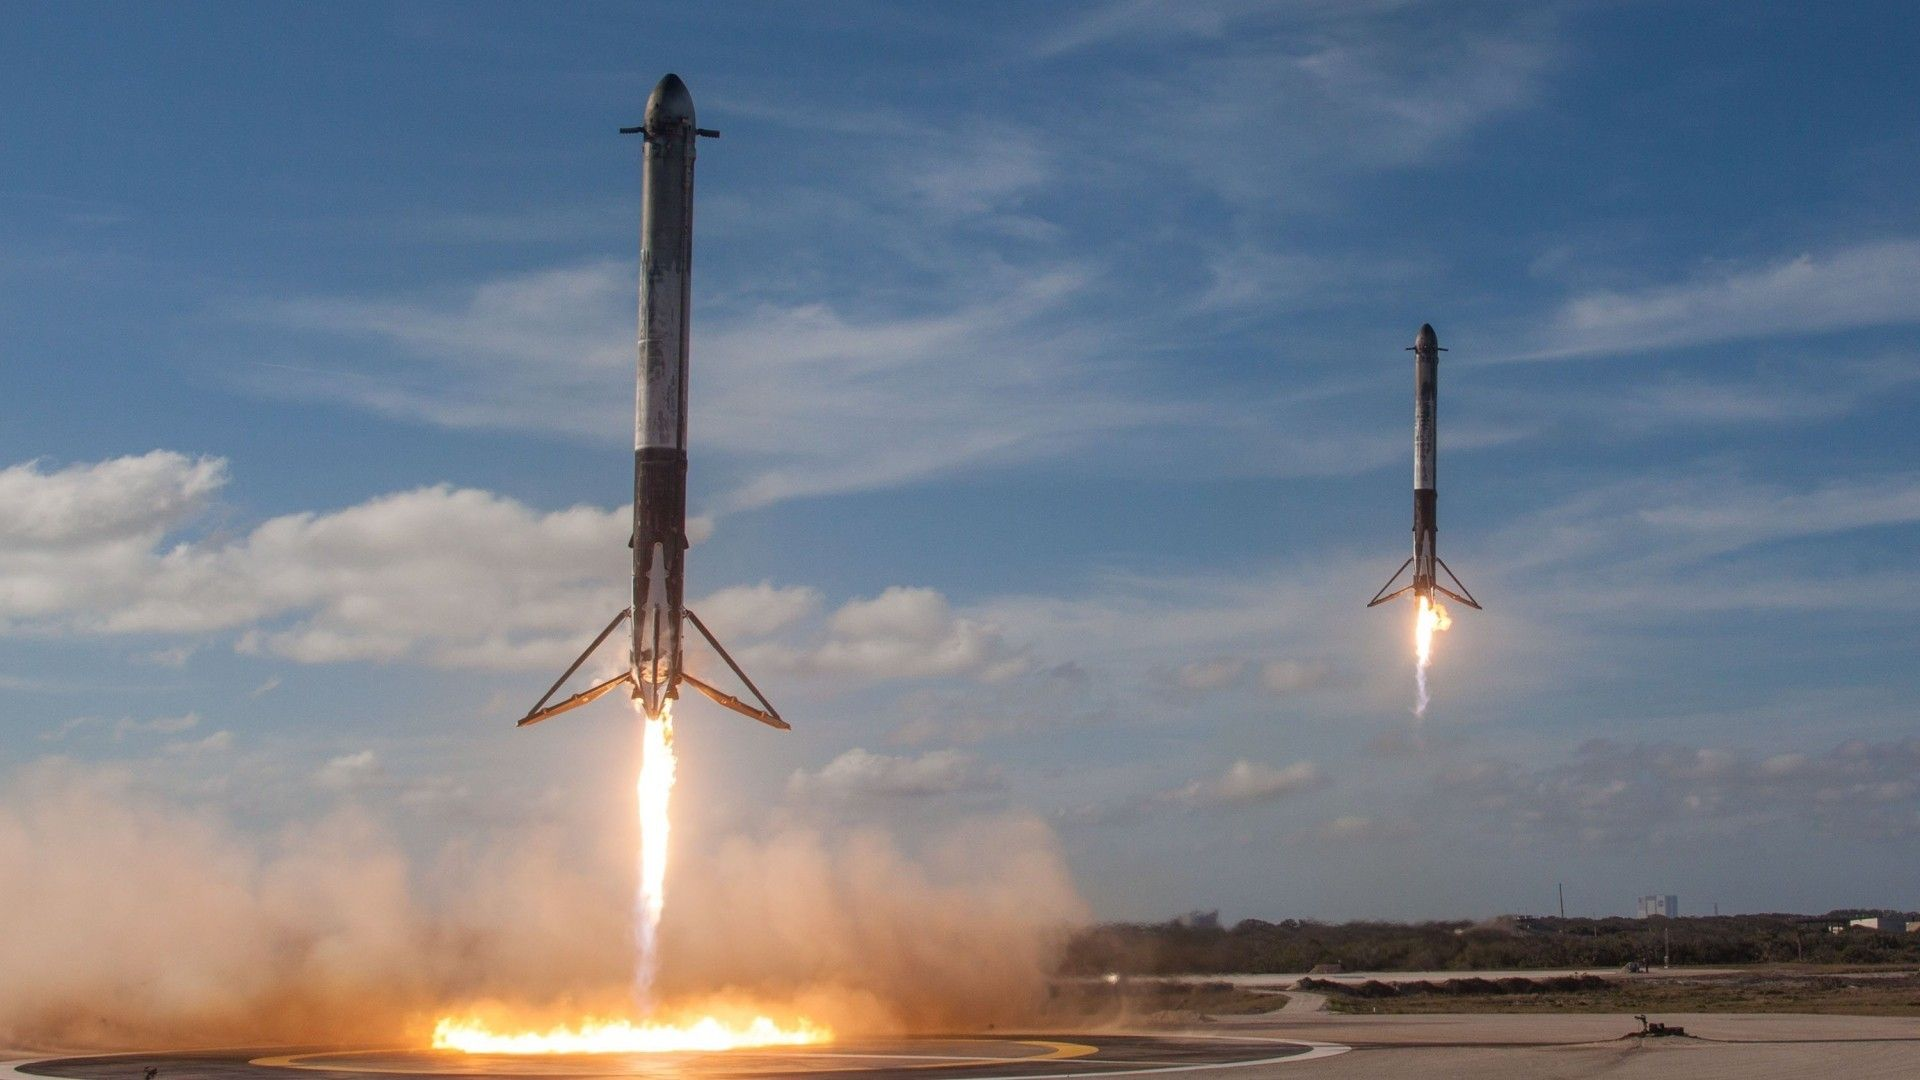 Spacex Wallpapers Hd New Tab Theme Falcon Heavy Spacex Falcon Spacex